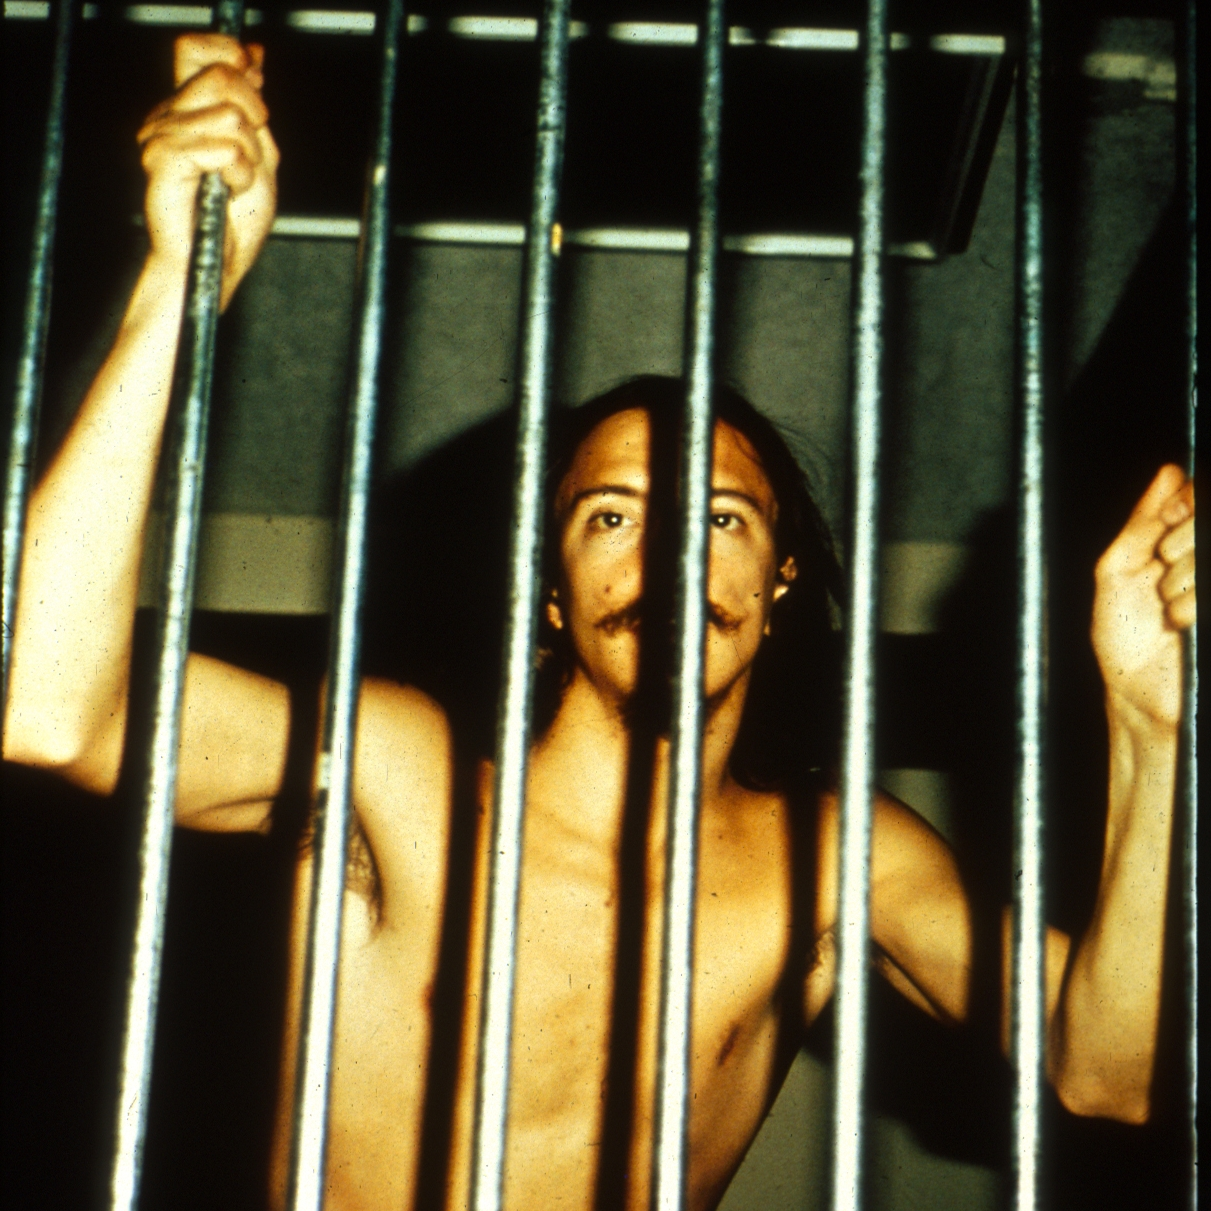 Naked Prisoner Grabbing Bars